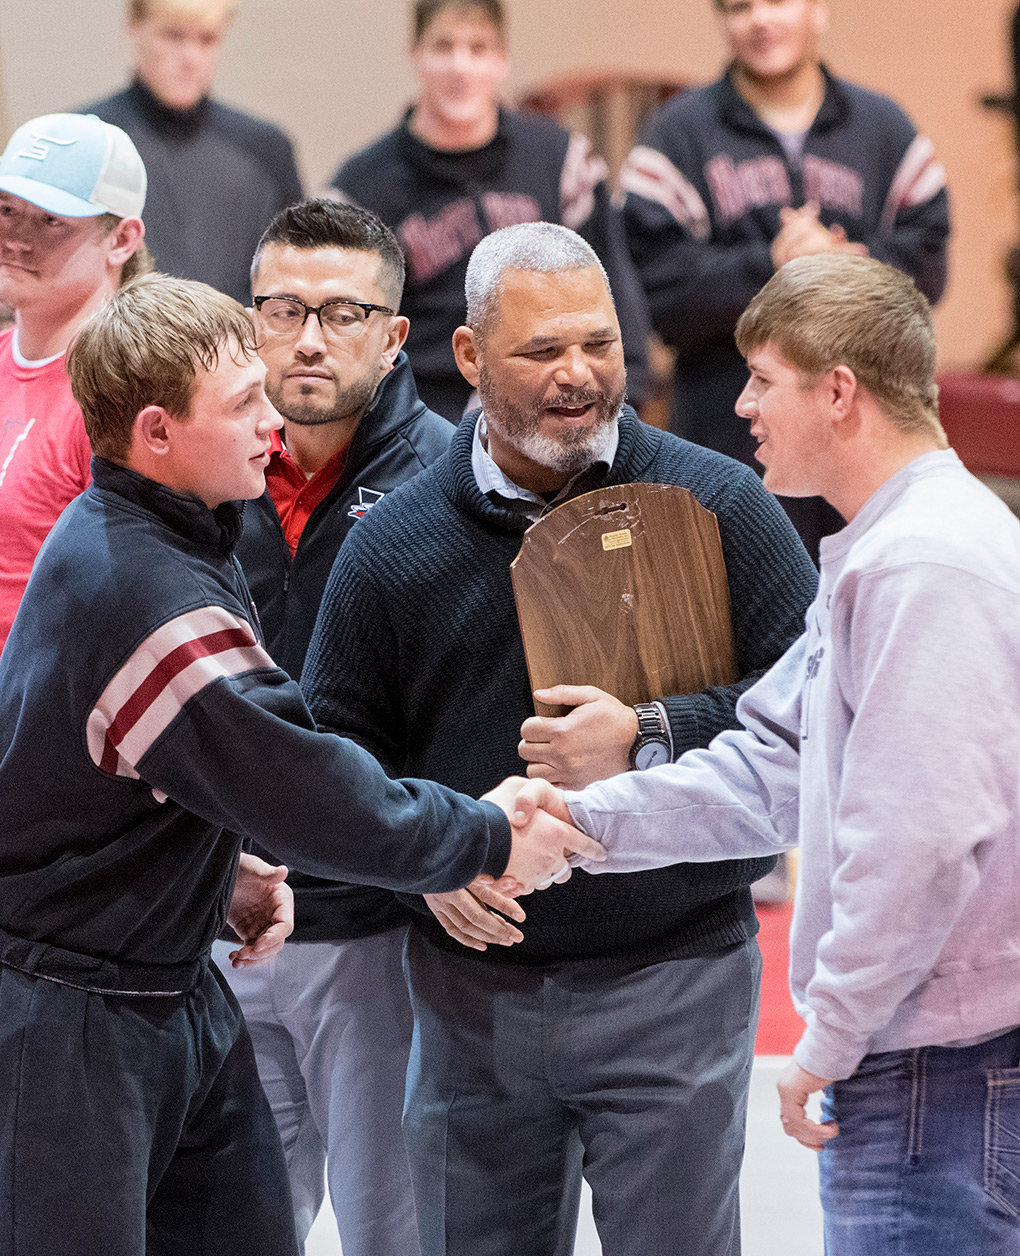 Northwest College head wrestling coach Jim Zeigler and 2018 Apodaca award winner Jeffrey Oakes congratulate 2019 award winner Porter Fox (left) at a Friday night ceremony.